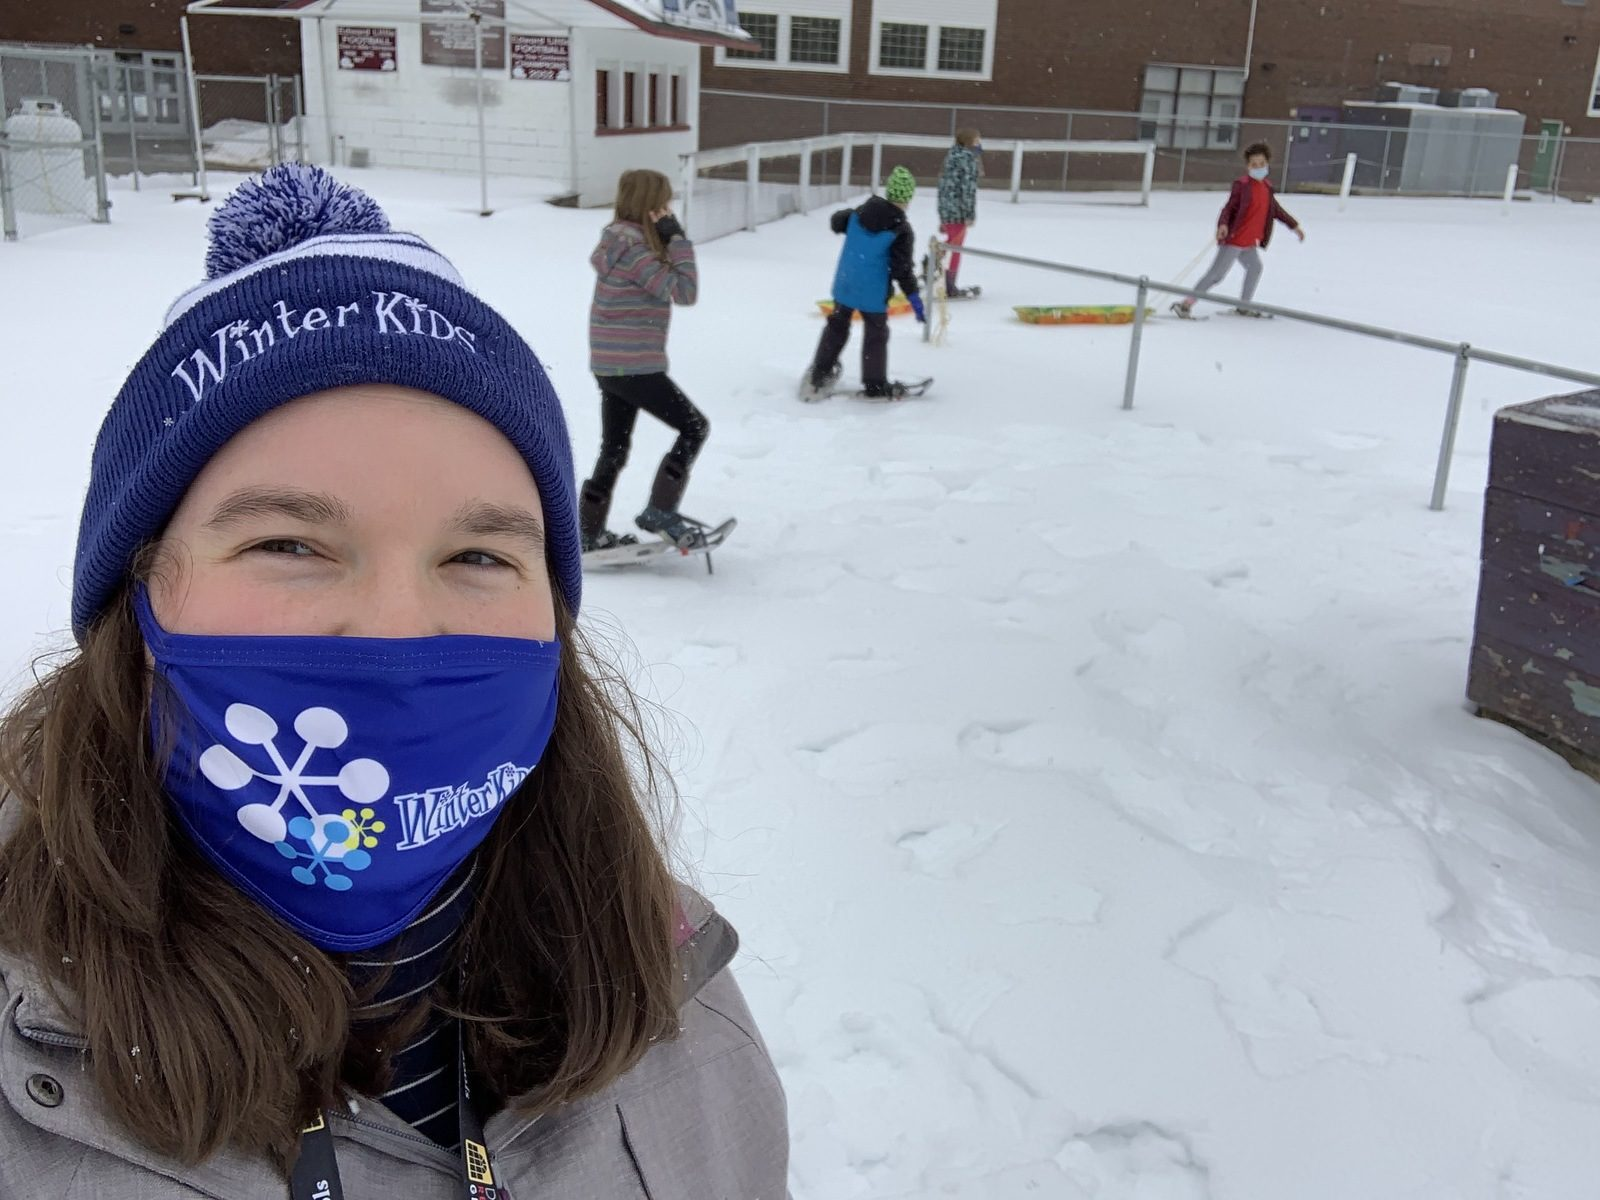 WinterKids Winter Games 2021 Moments of the Week-FULL GALLERY